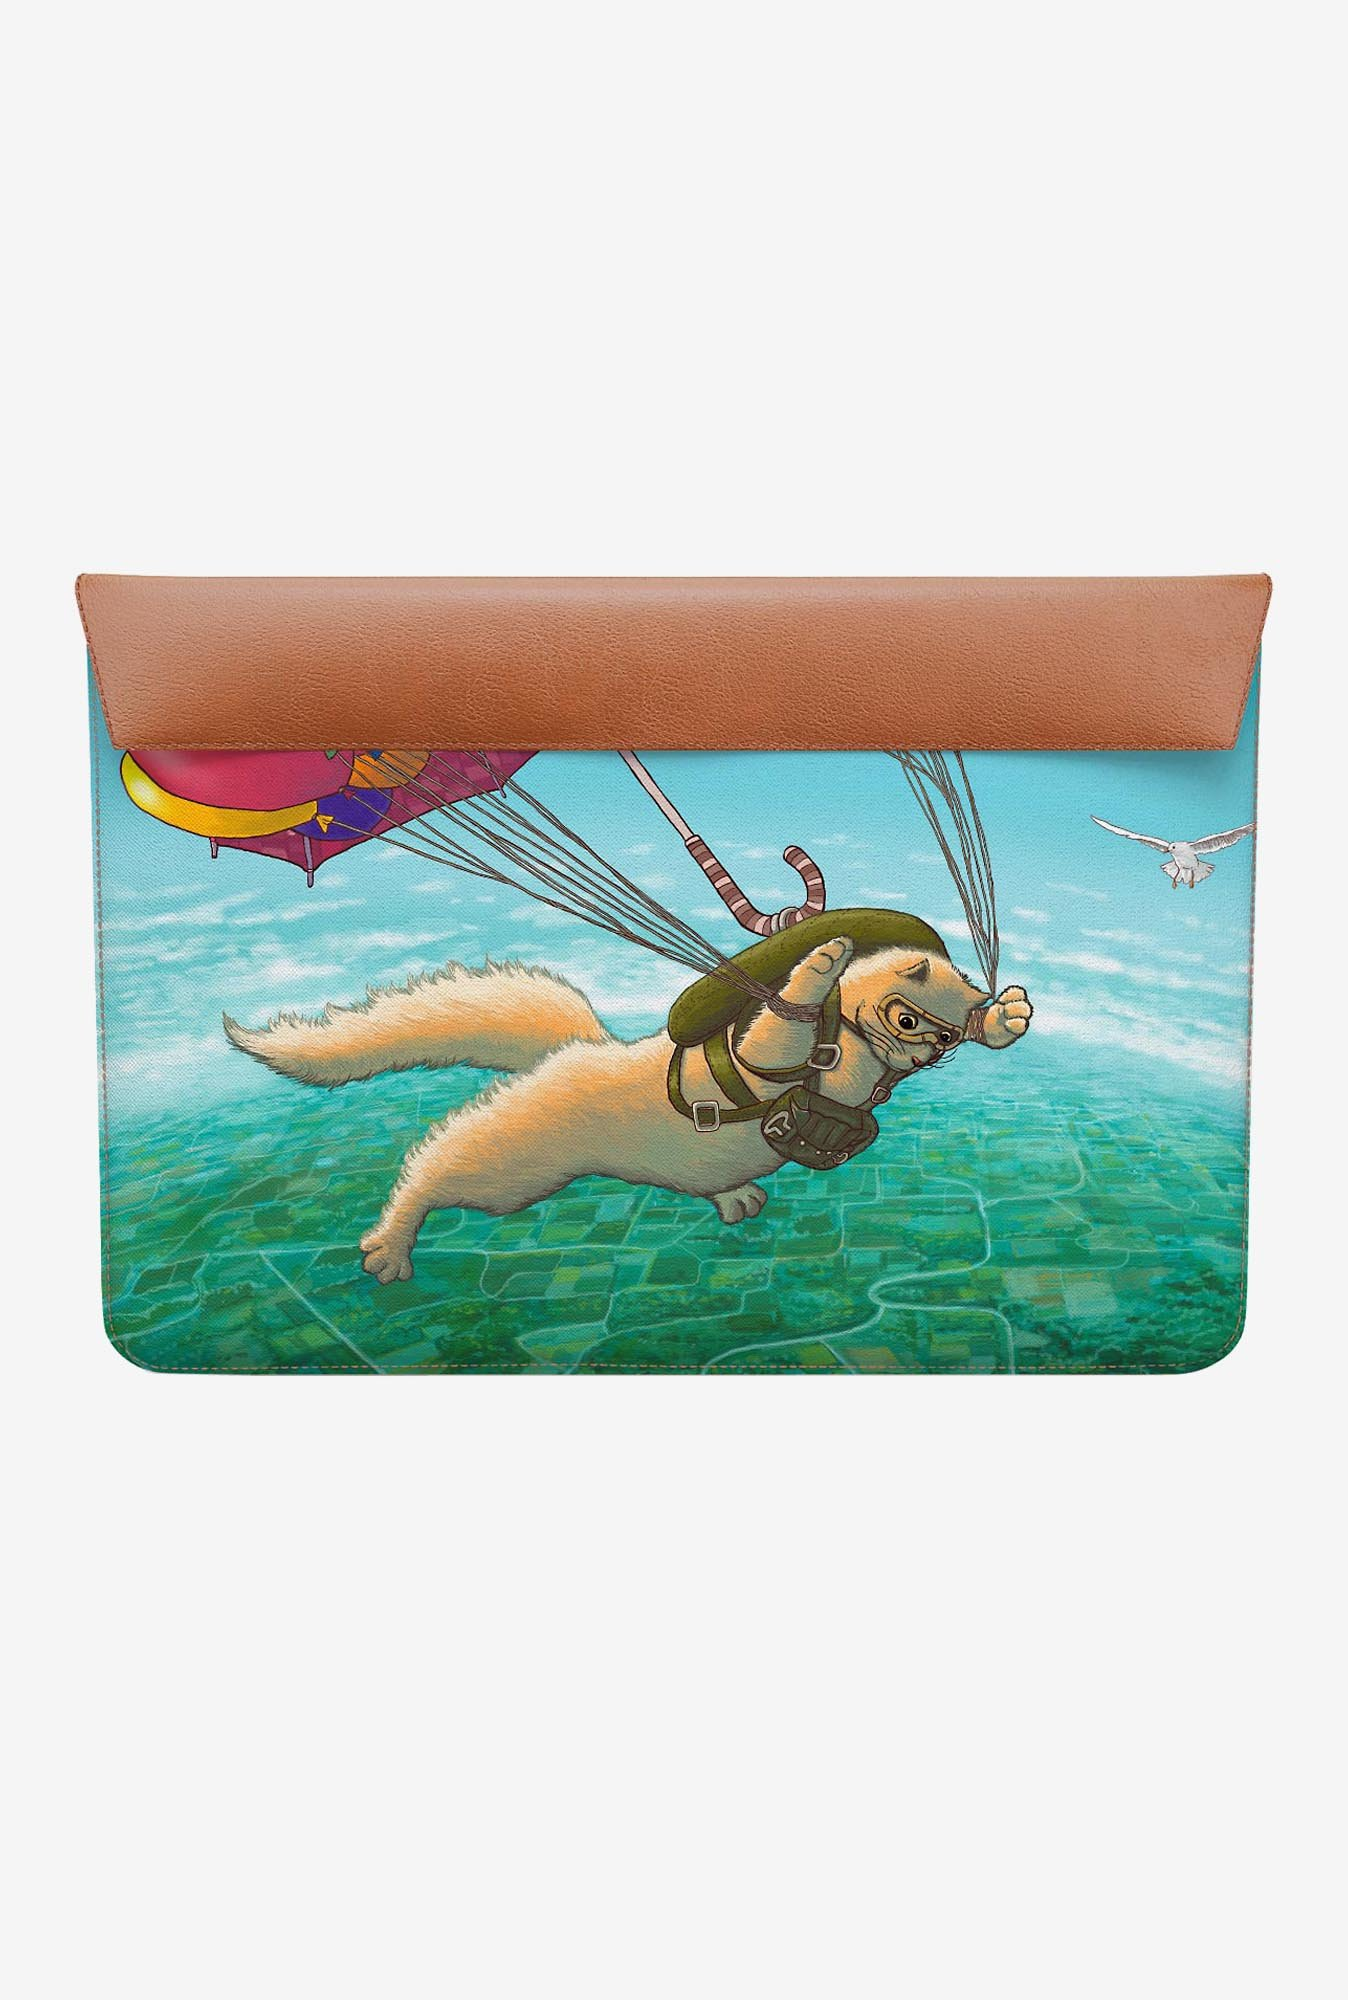 DailyObjects Skydiving Feline MacBook Air 13 Envelope Sleeve